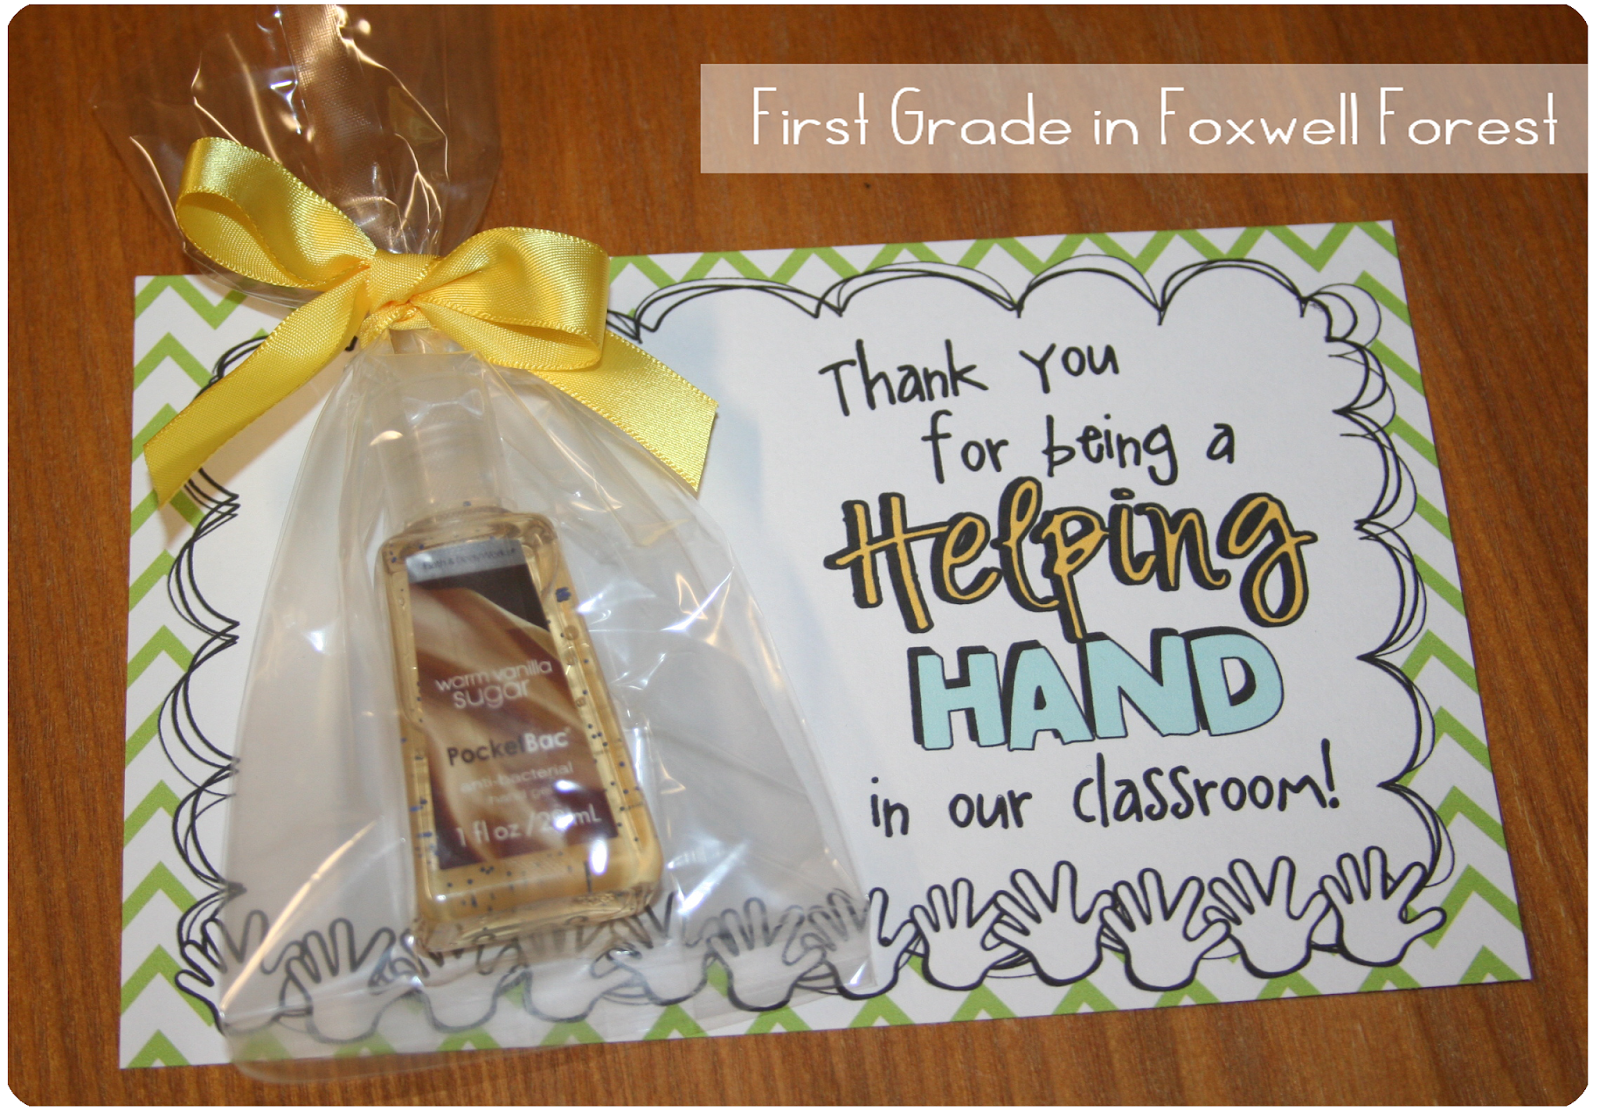 Volunteer thank you gift foxwell forest negle Choice Image